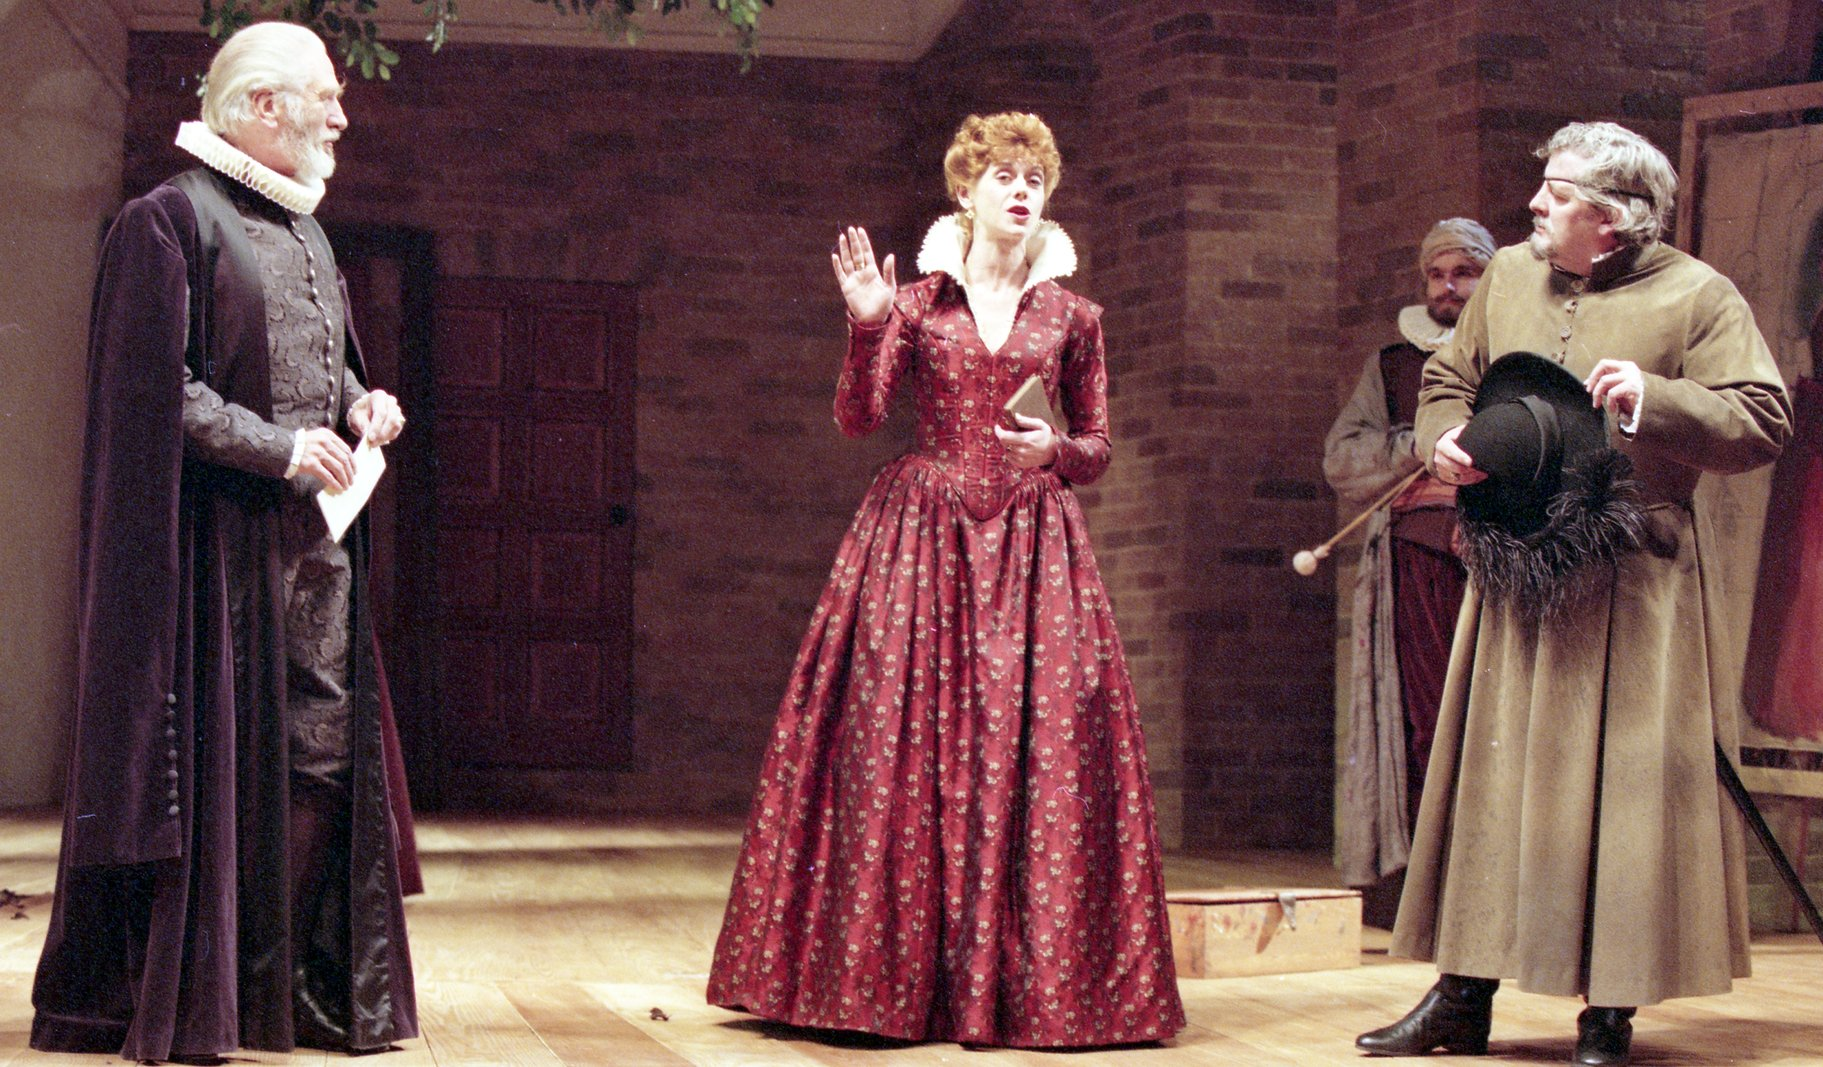 A woman in a red dress talks to three men.